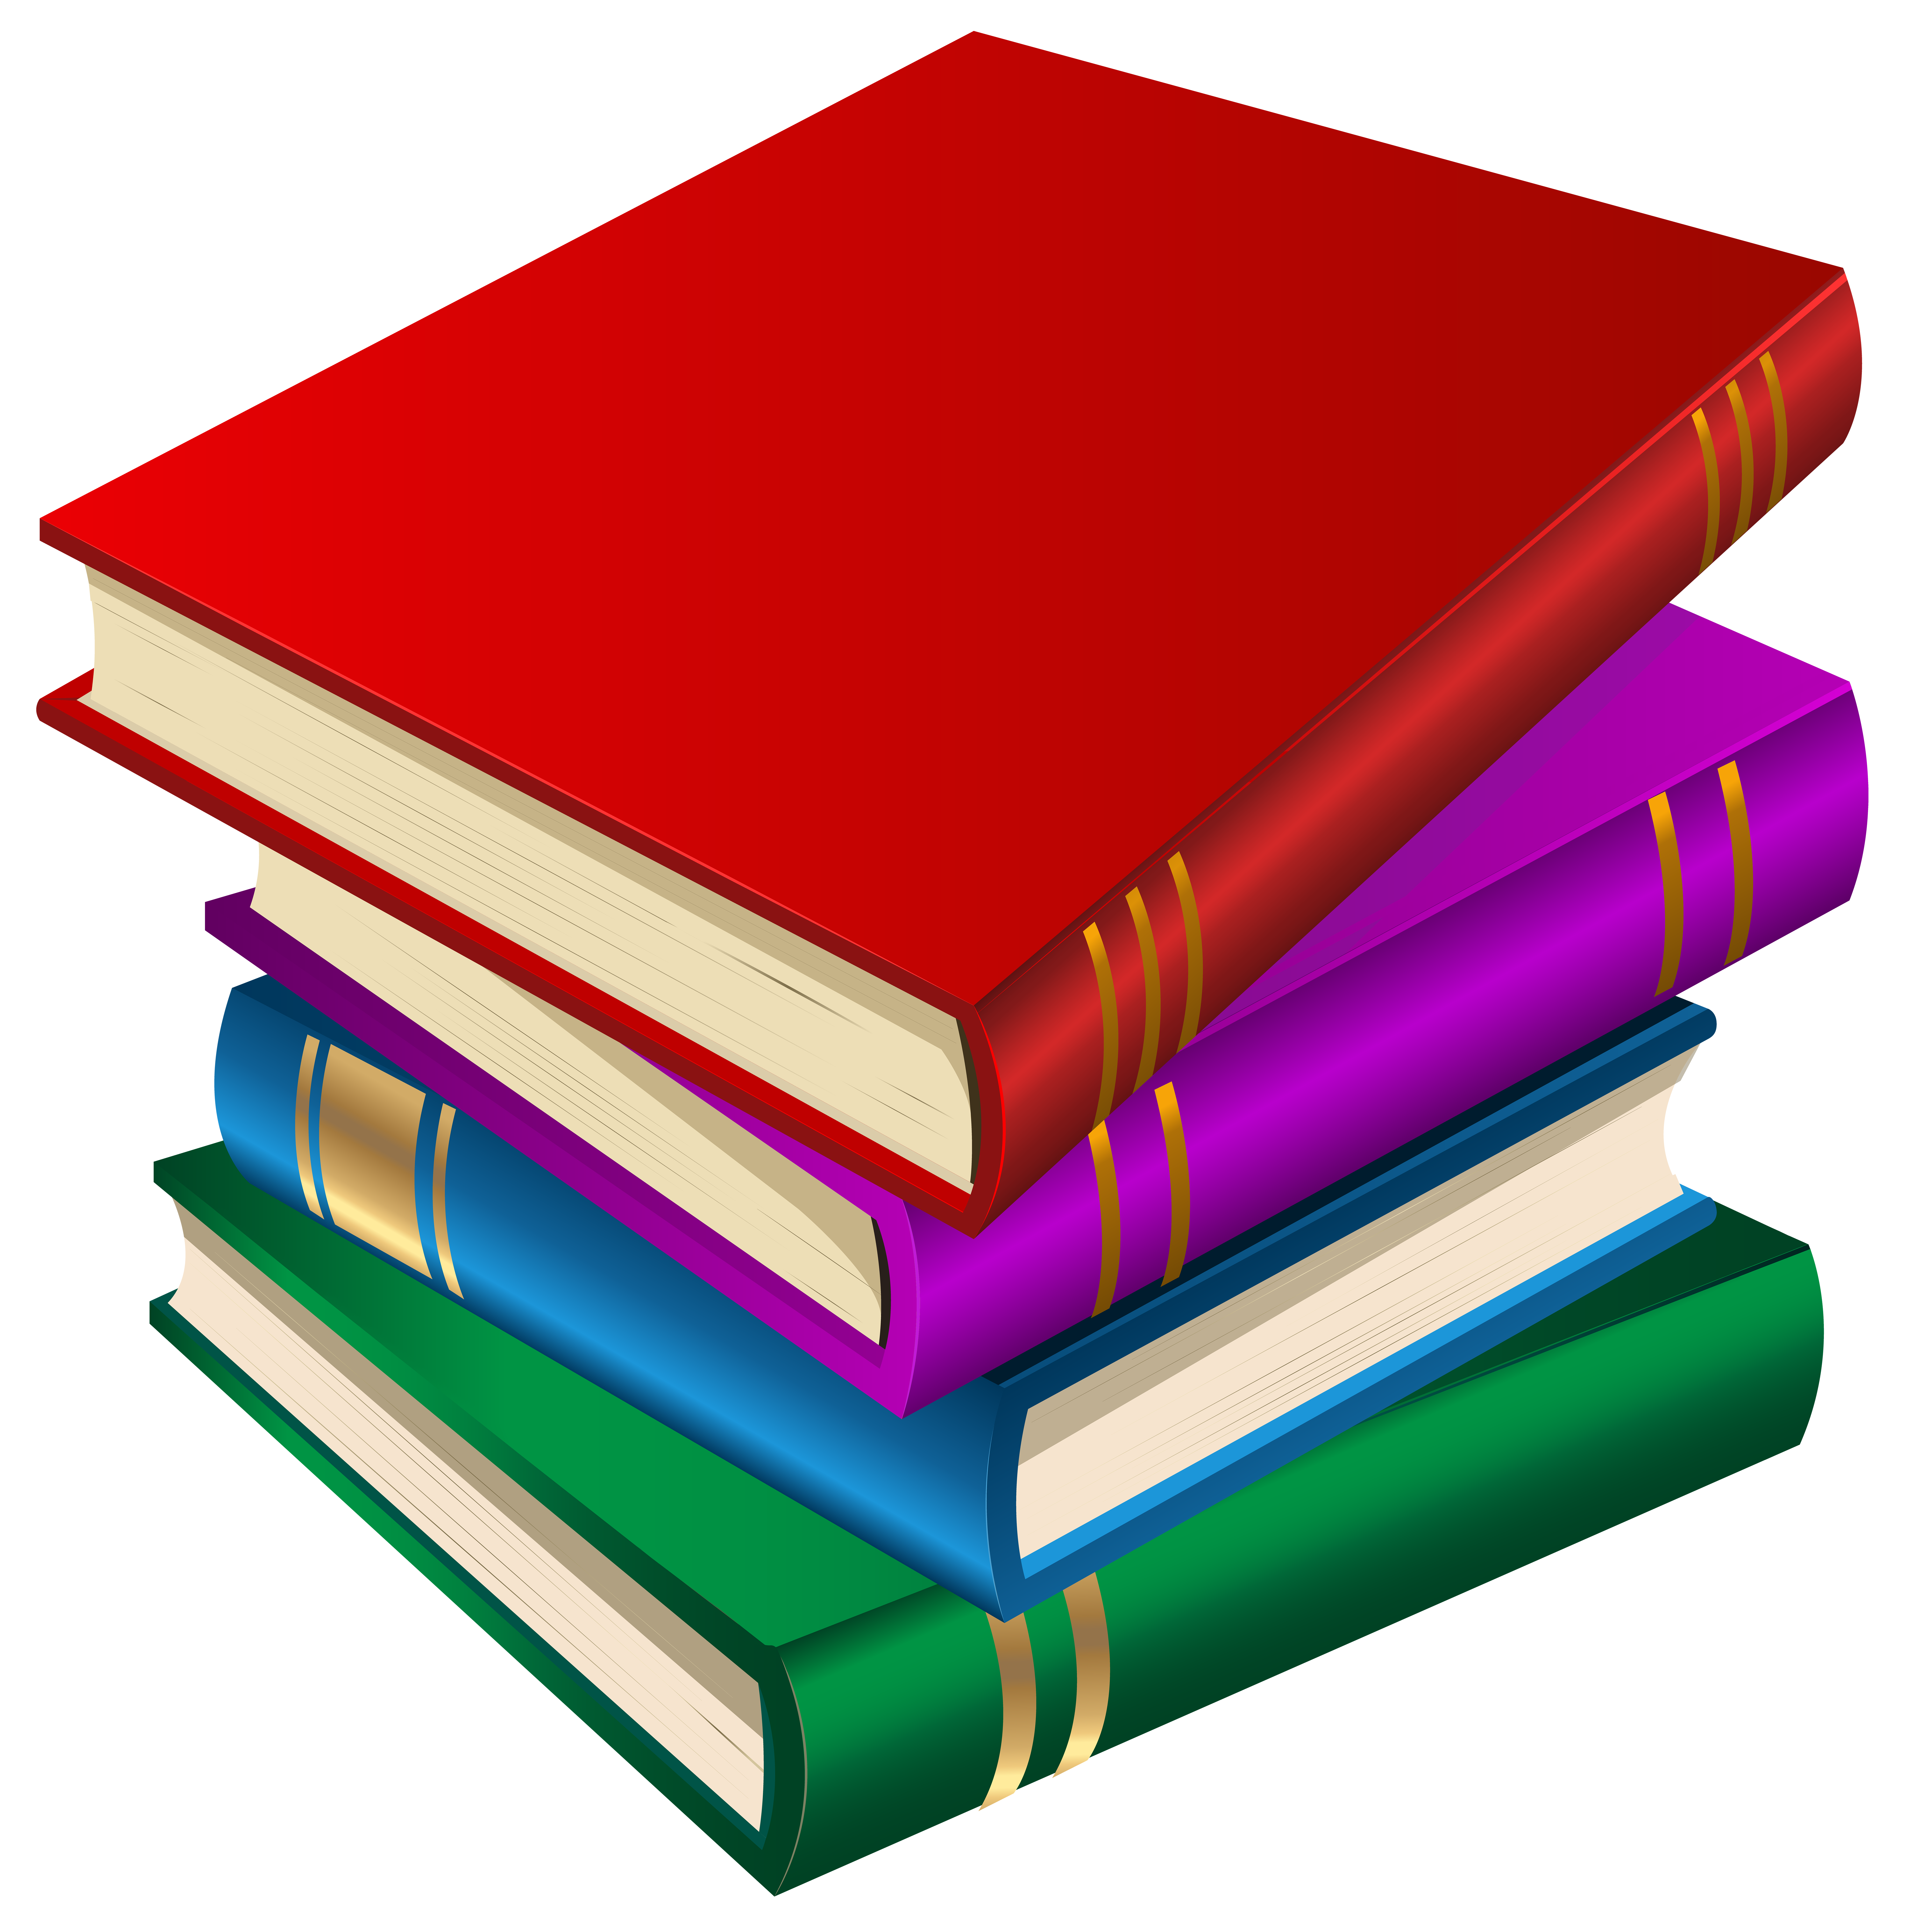 Book png clipart. Books image gallery yopriceville